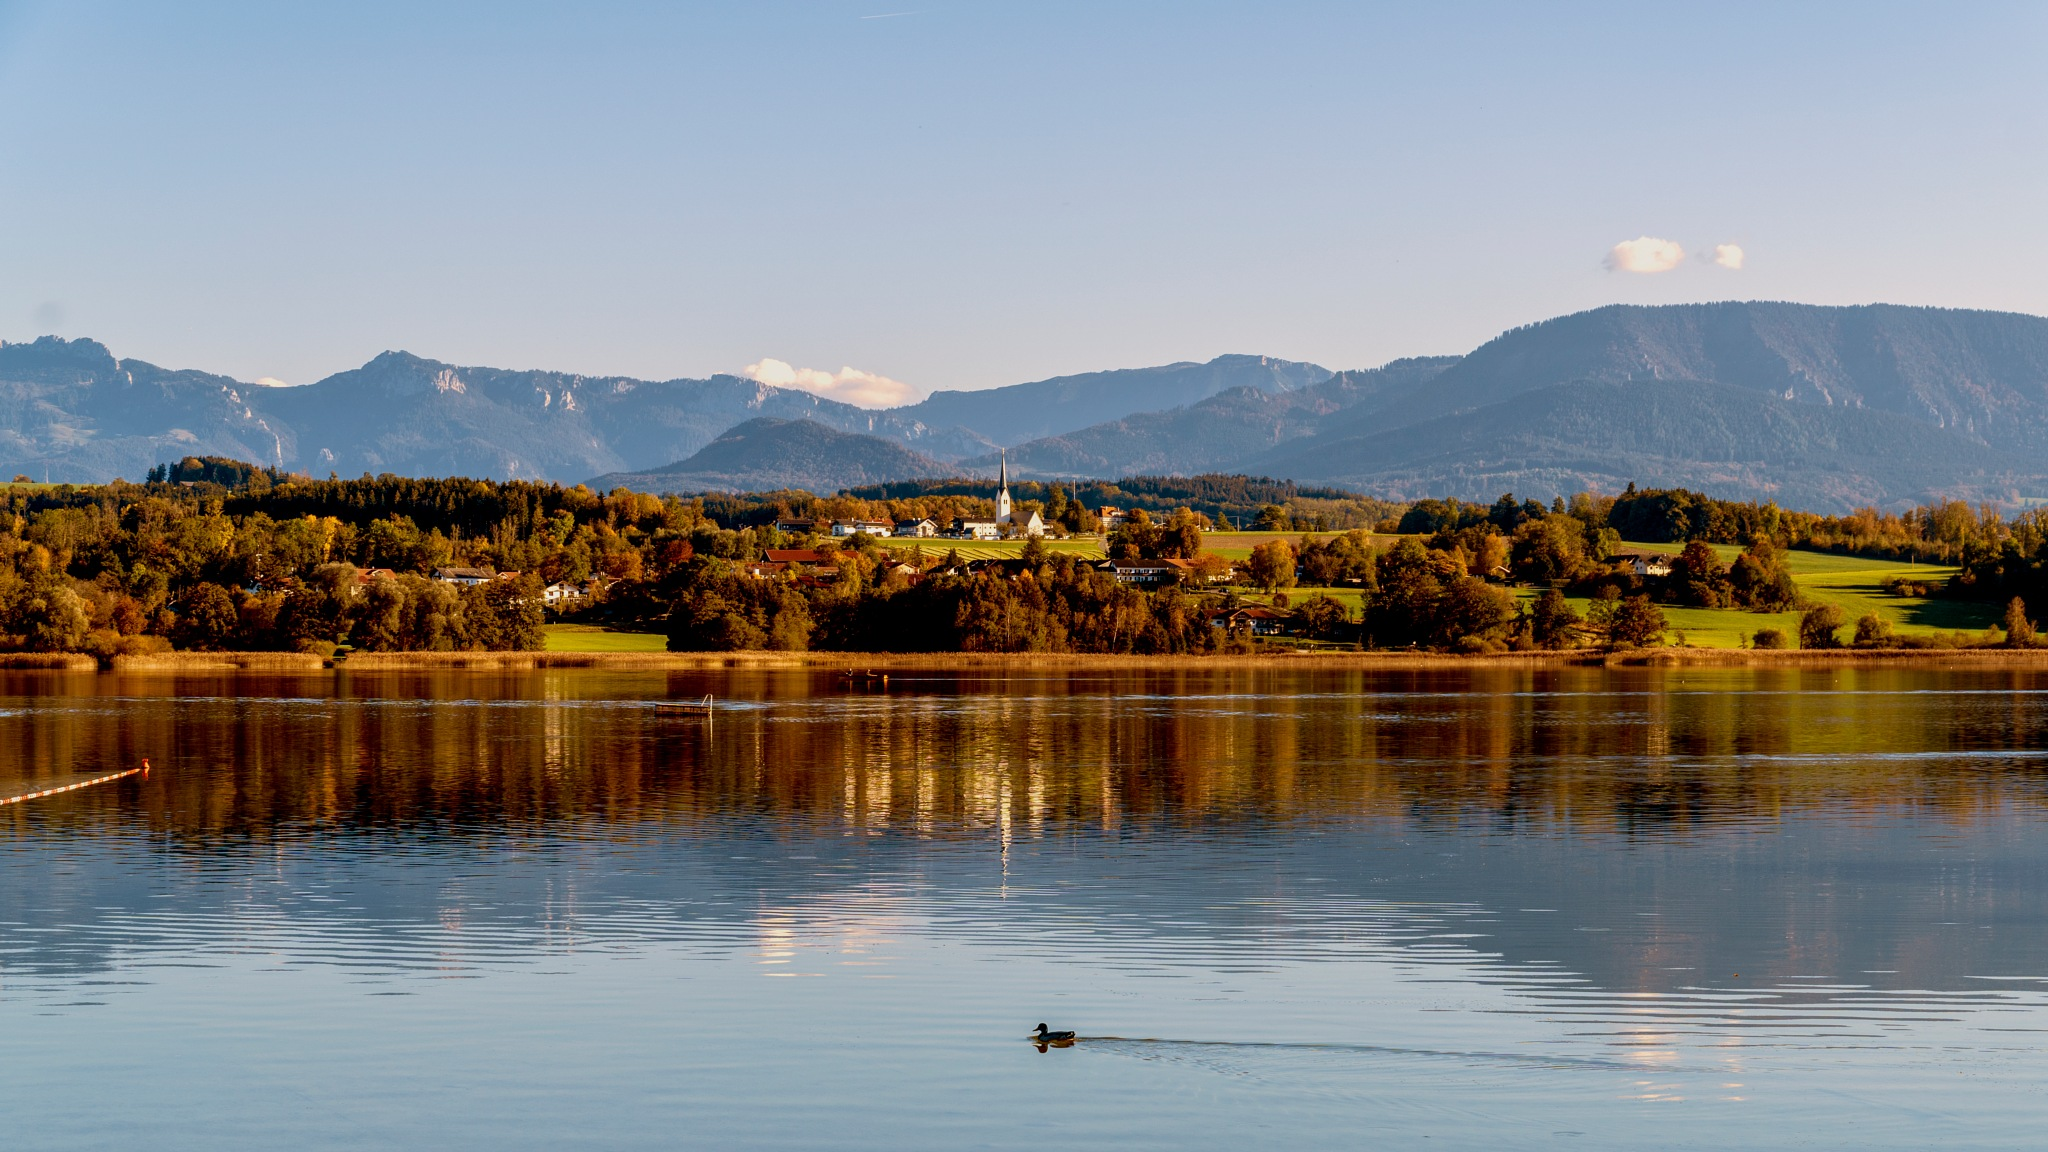 Autumn in Simssee by Venelin Todorov